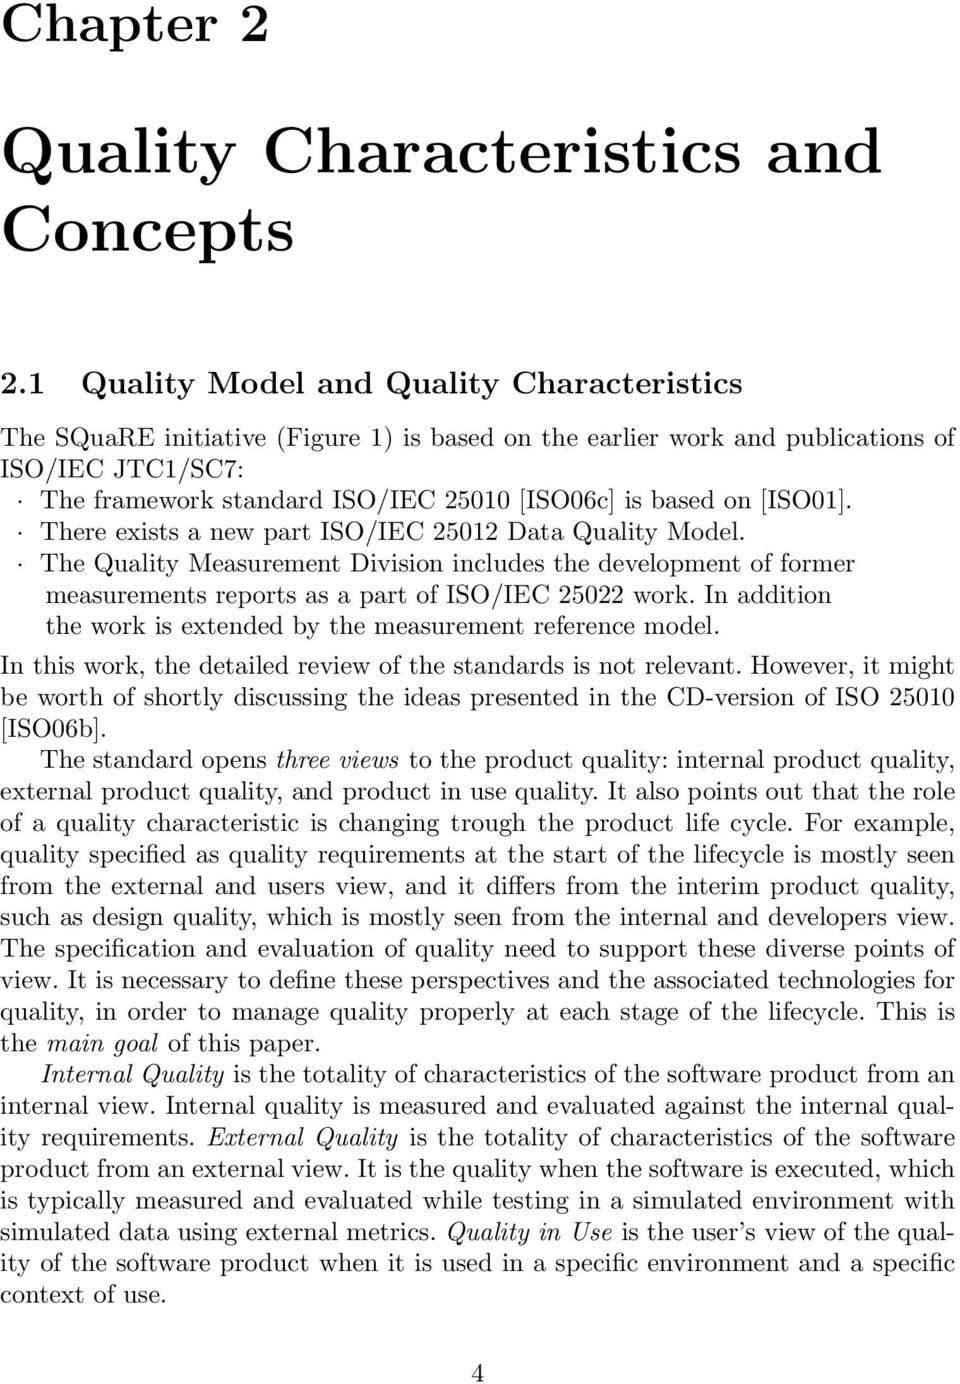 on [ISO01]. There exists a new part ISO/IEC 25012 Data Quality Model. The Quality Measurement Division includes the development of former measurements reports as a part of ISO/IEC 25022 work.